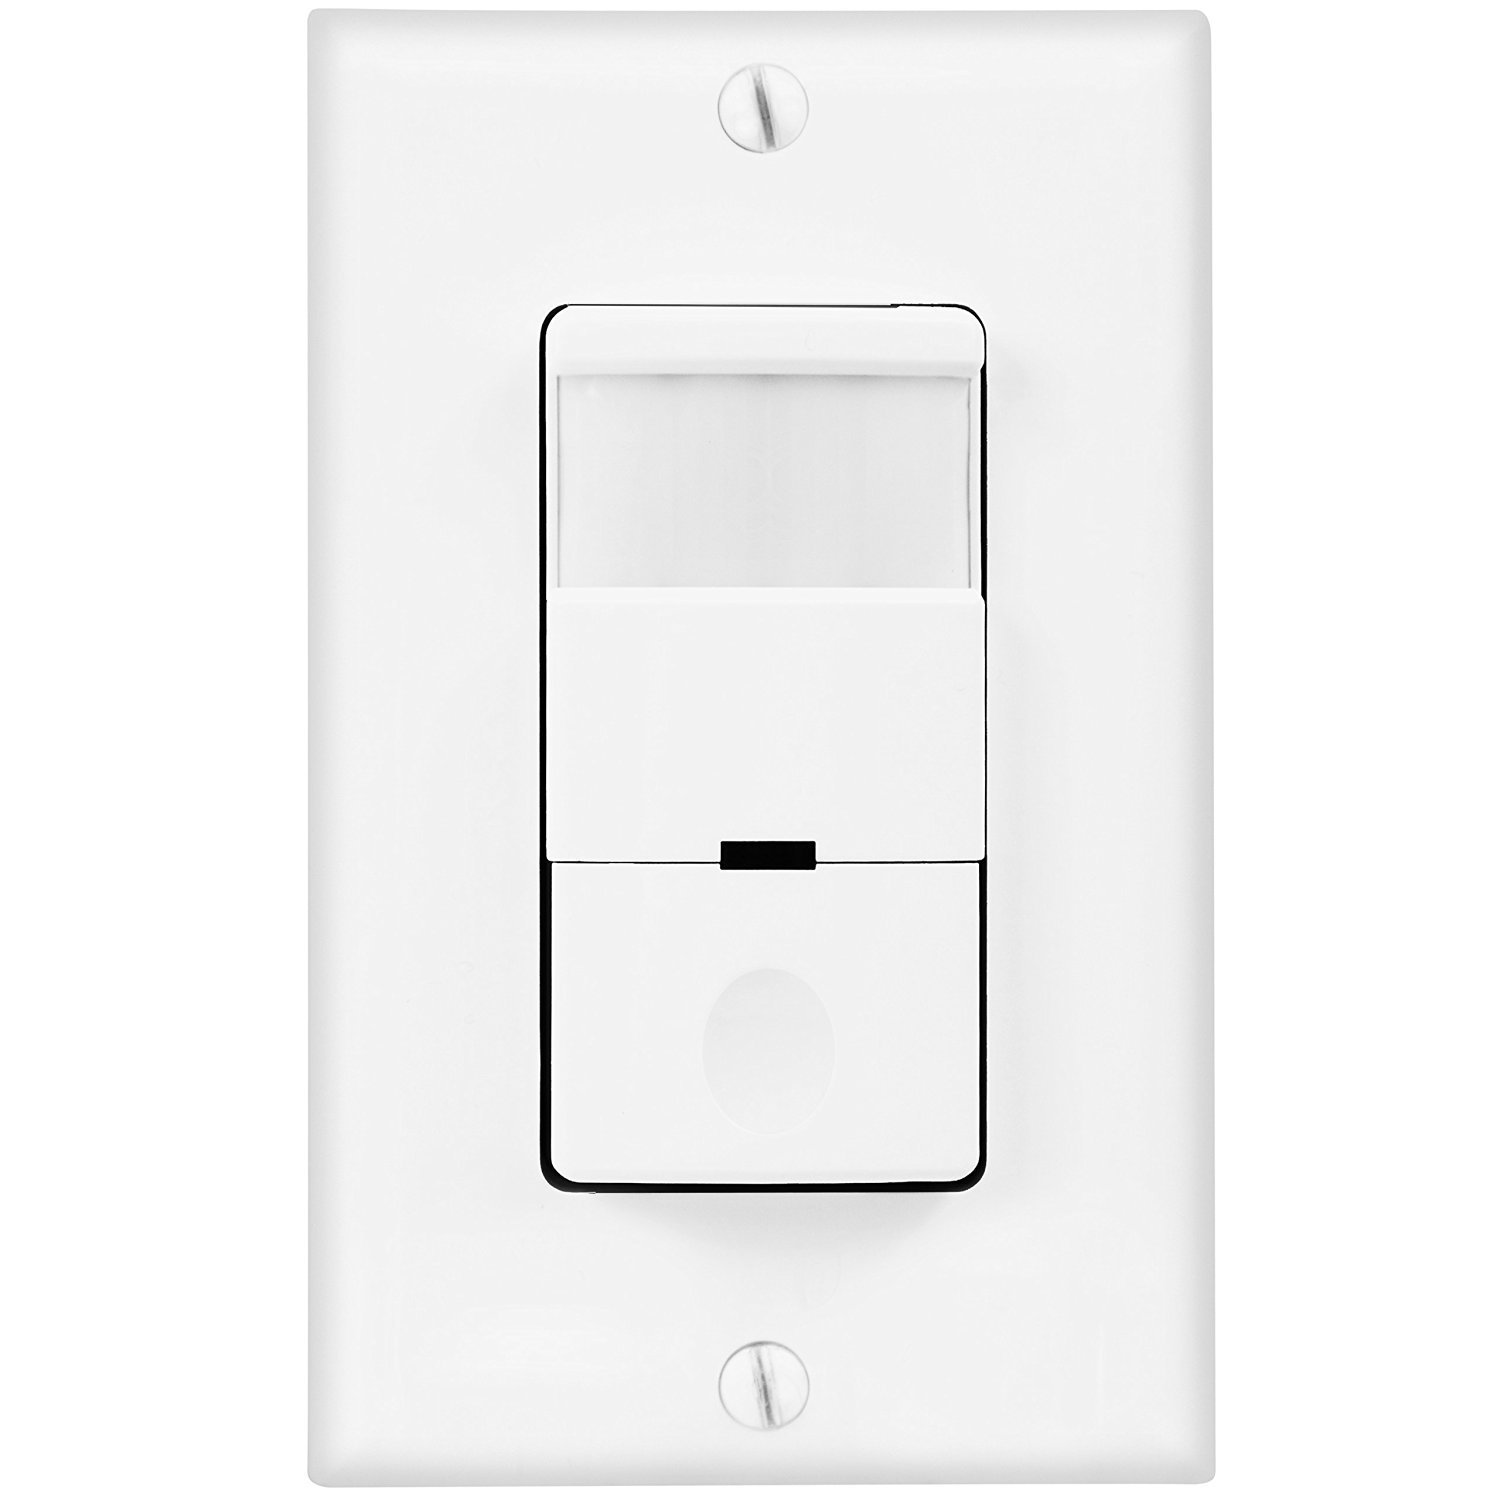 hight resolution of topgreener pir motion sensor light switch 500w infrared occupancy vacancy motion detector sensor single pole with neutral wire wall plate tdos5 white